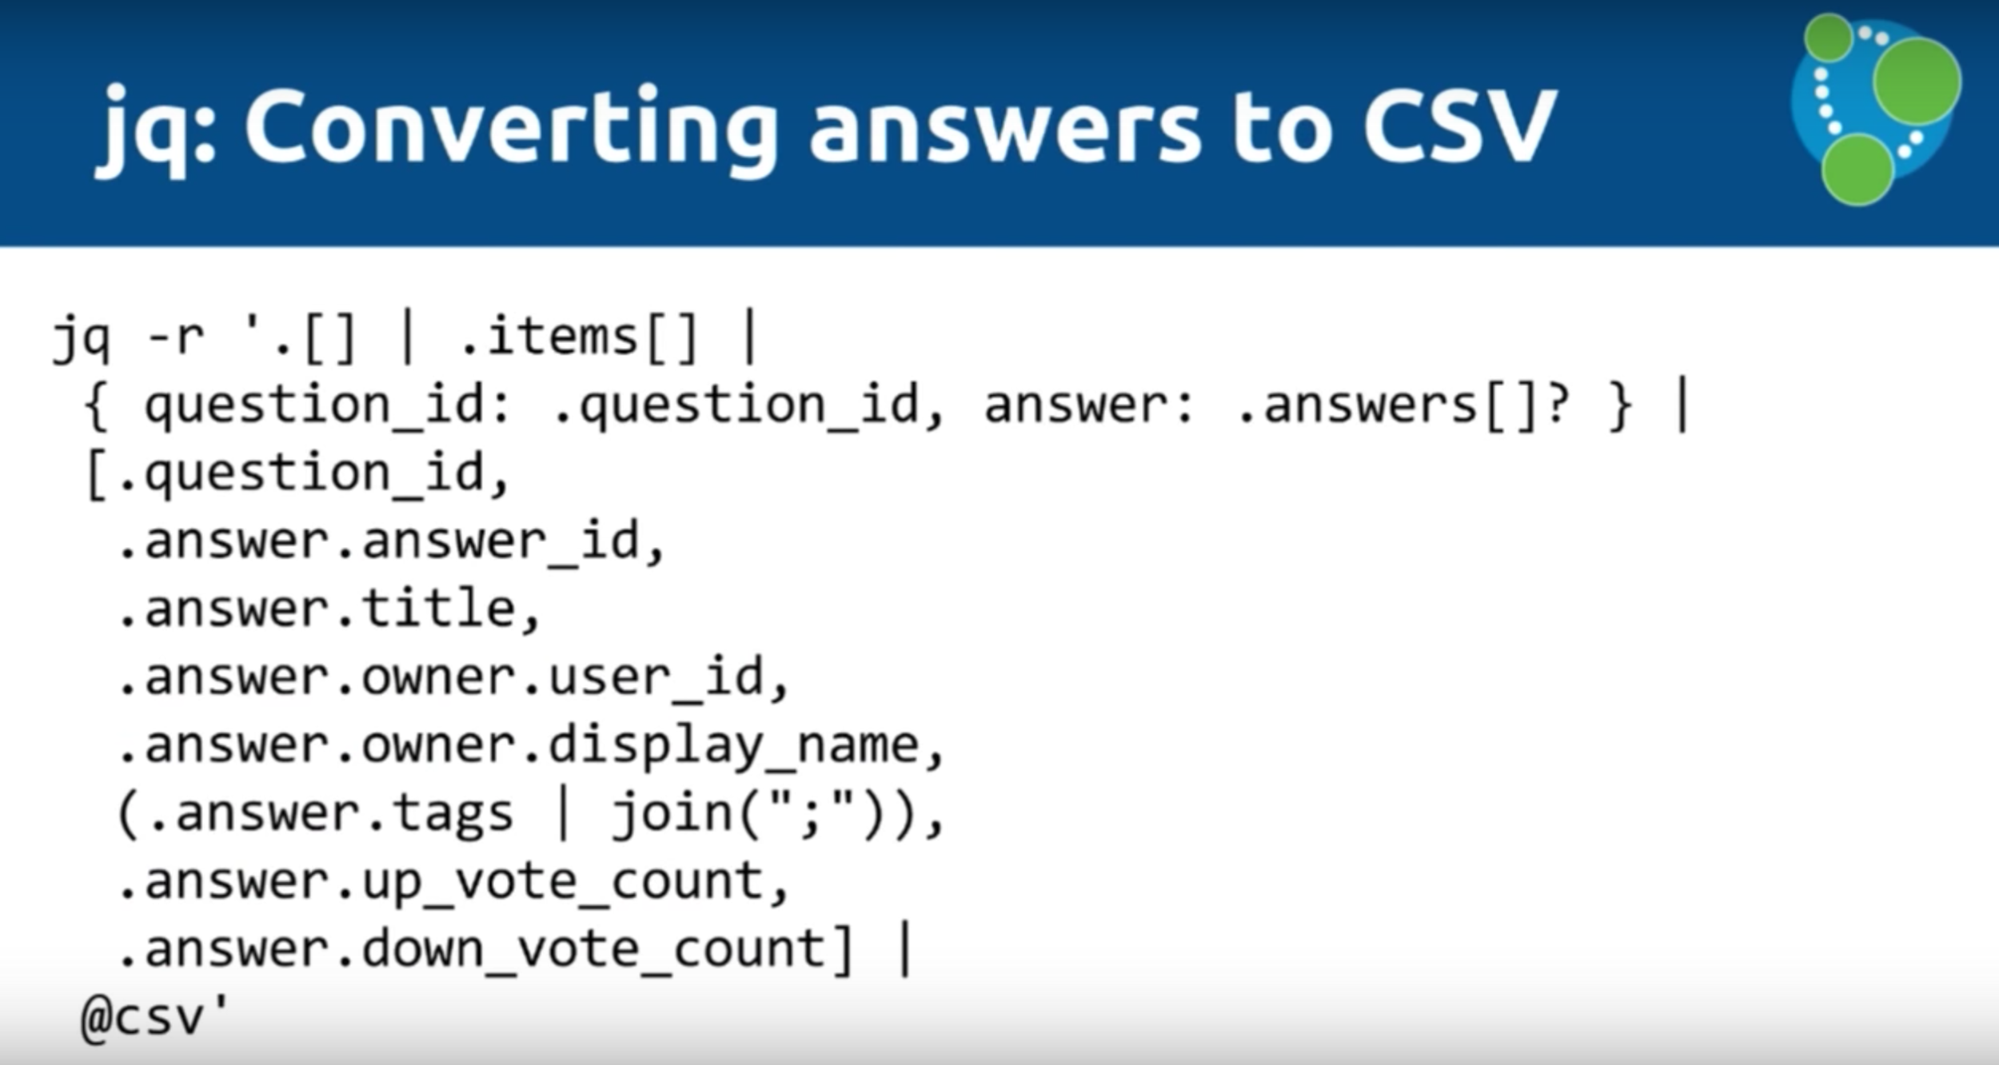 The jq tool for data conversion of CSV